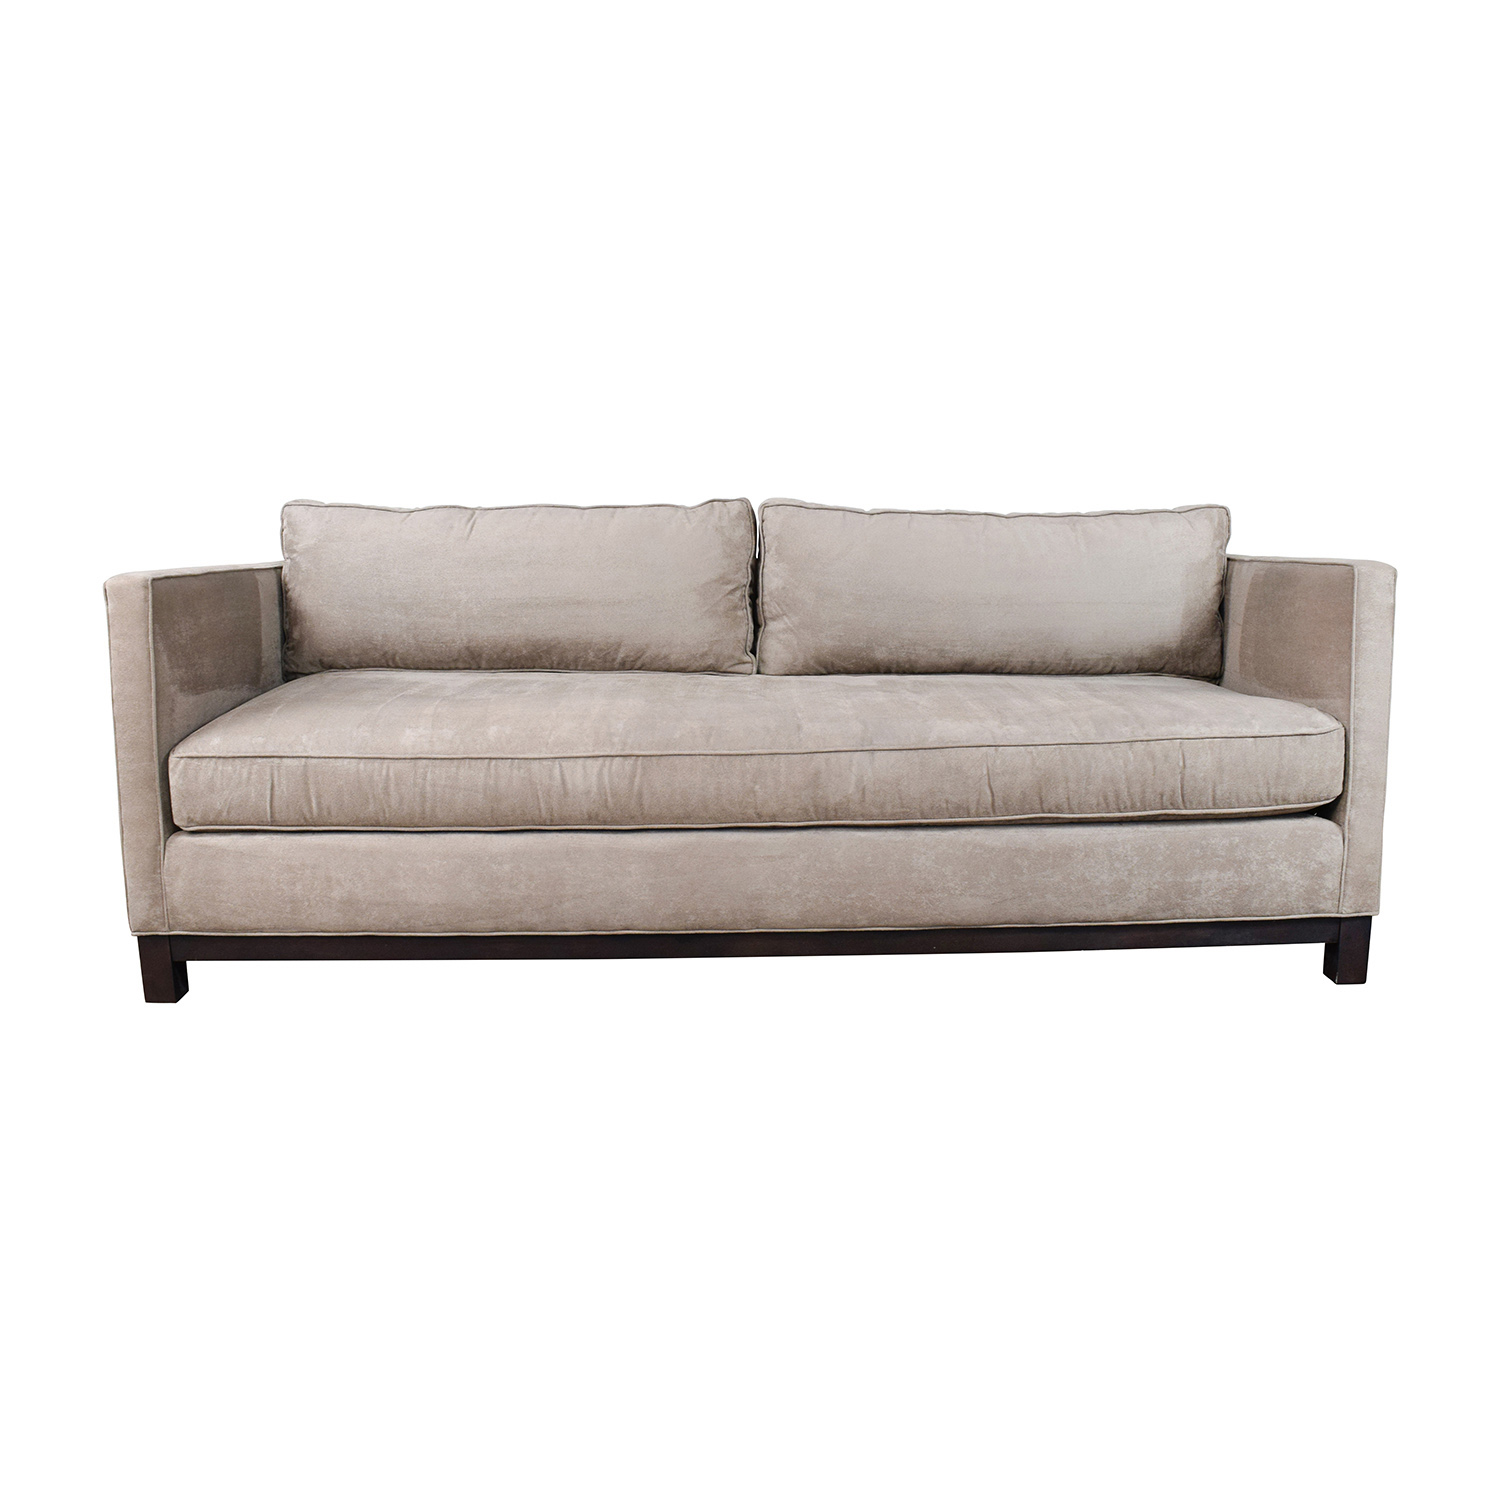 Mitchell Gold and Bob Williams Mitchell Gold & Bob Williams Clifton Sofa Classic Sofas